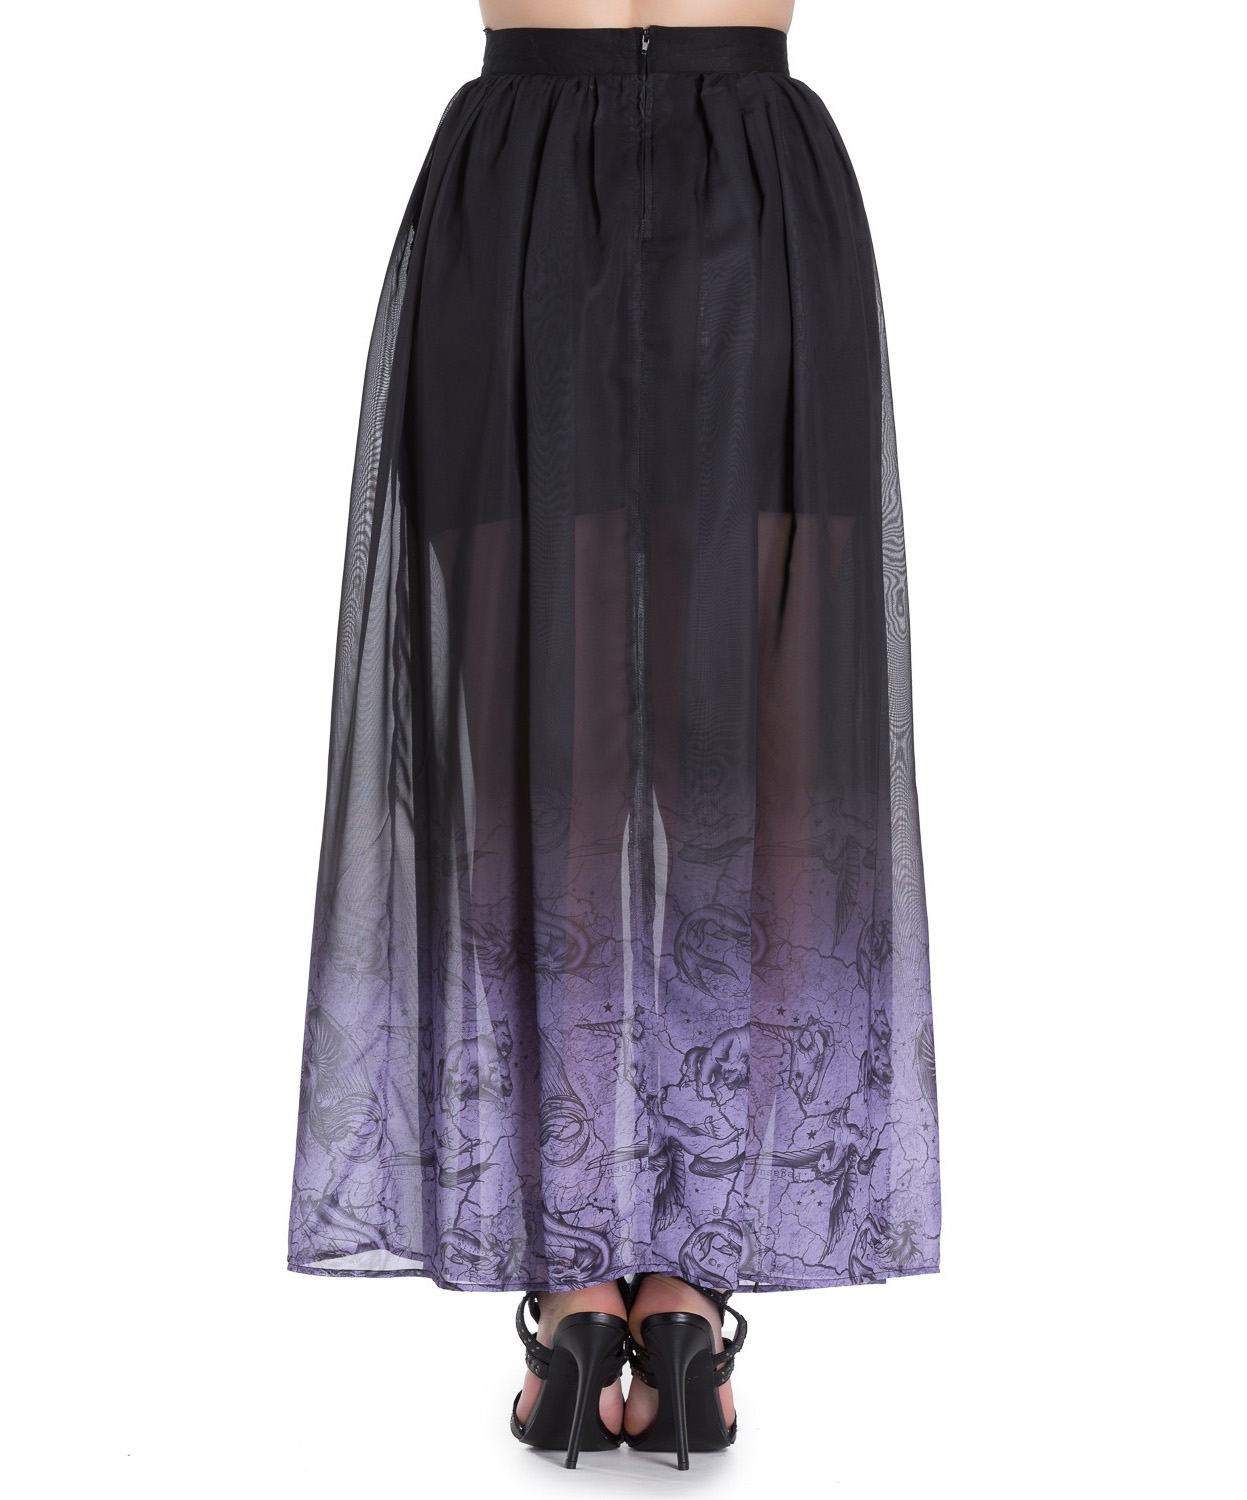 Hell-Bunny-Spin-Doctor-Goth-Purple-Mystical-EVADINE-Maxi-Skirt-All-Sizes thumbnail 5